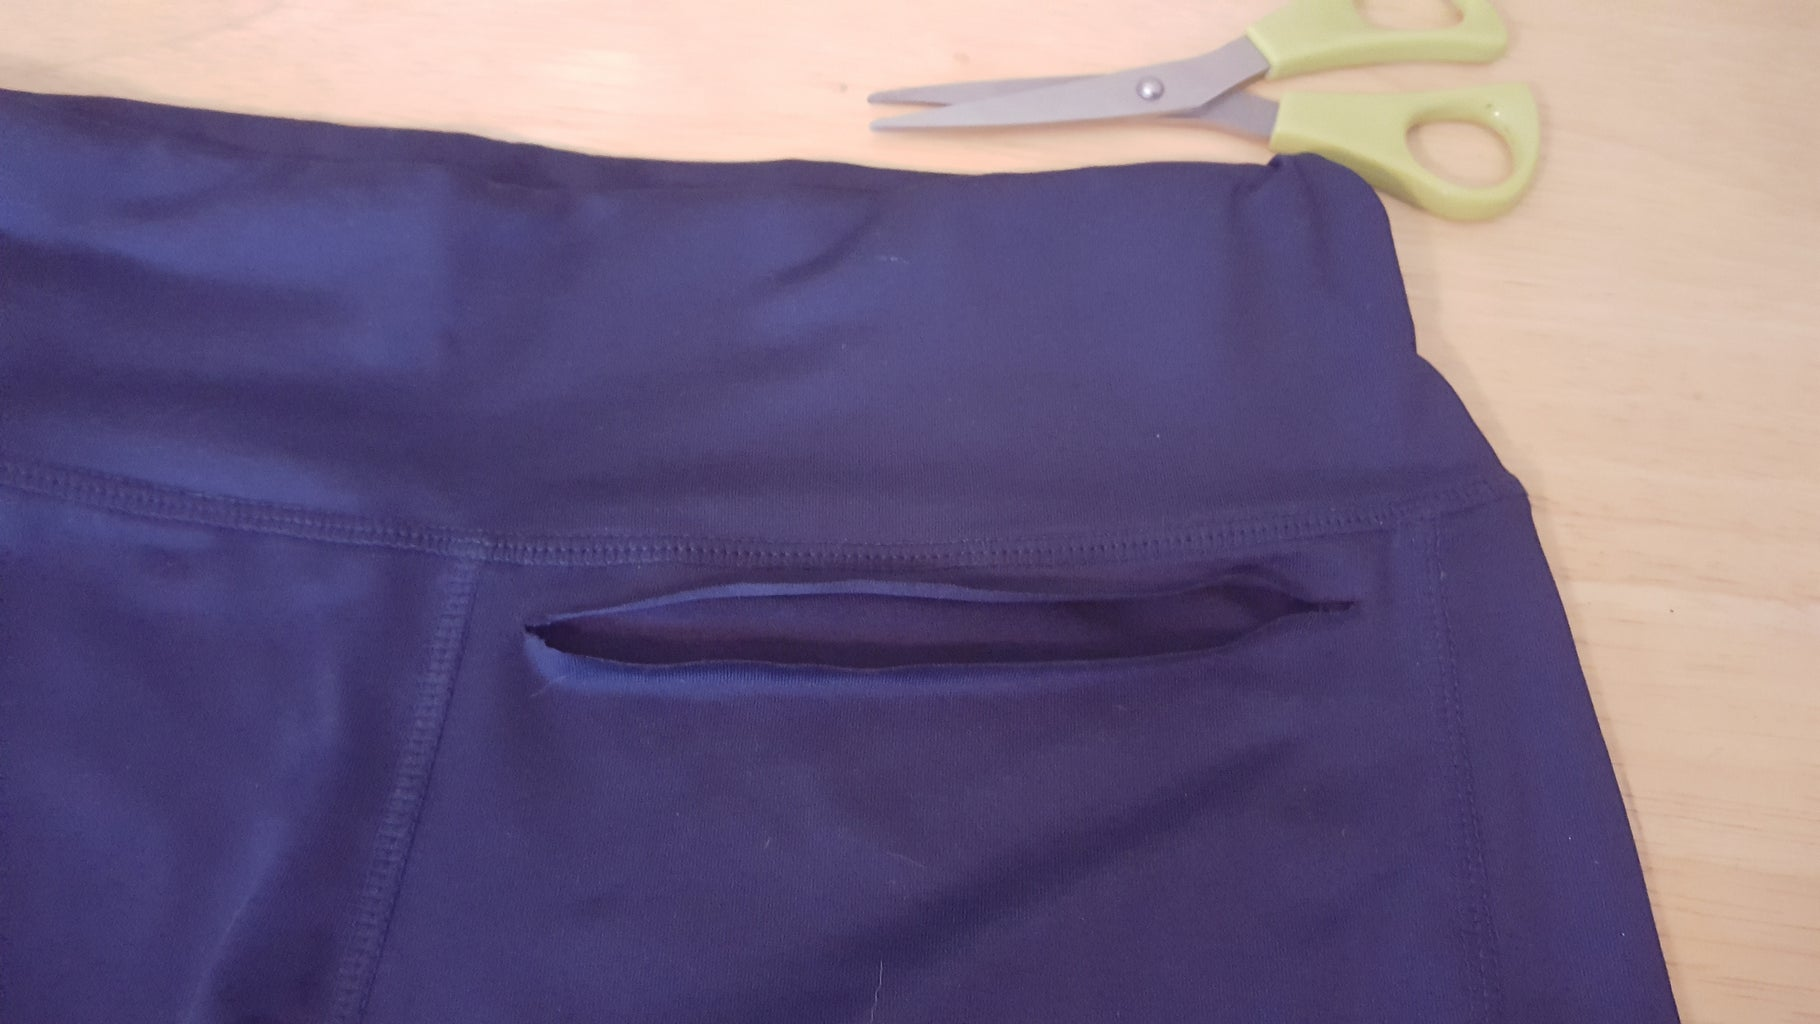 Measure and Cut the Shorts